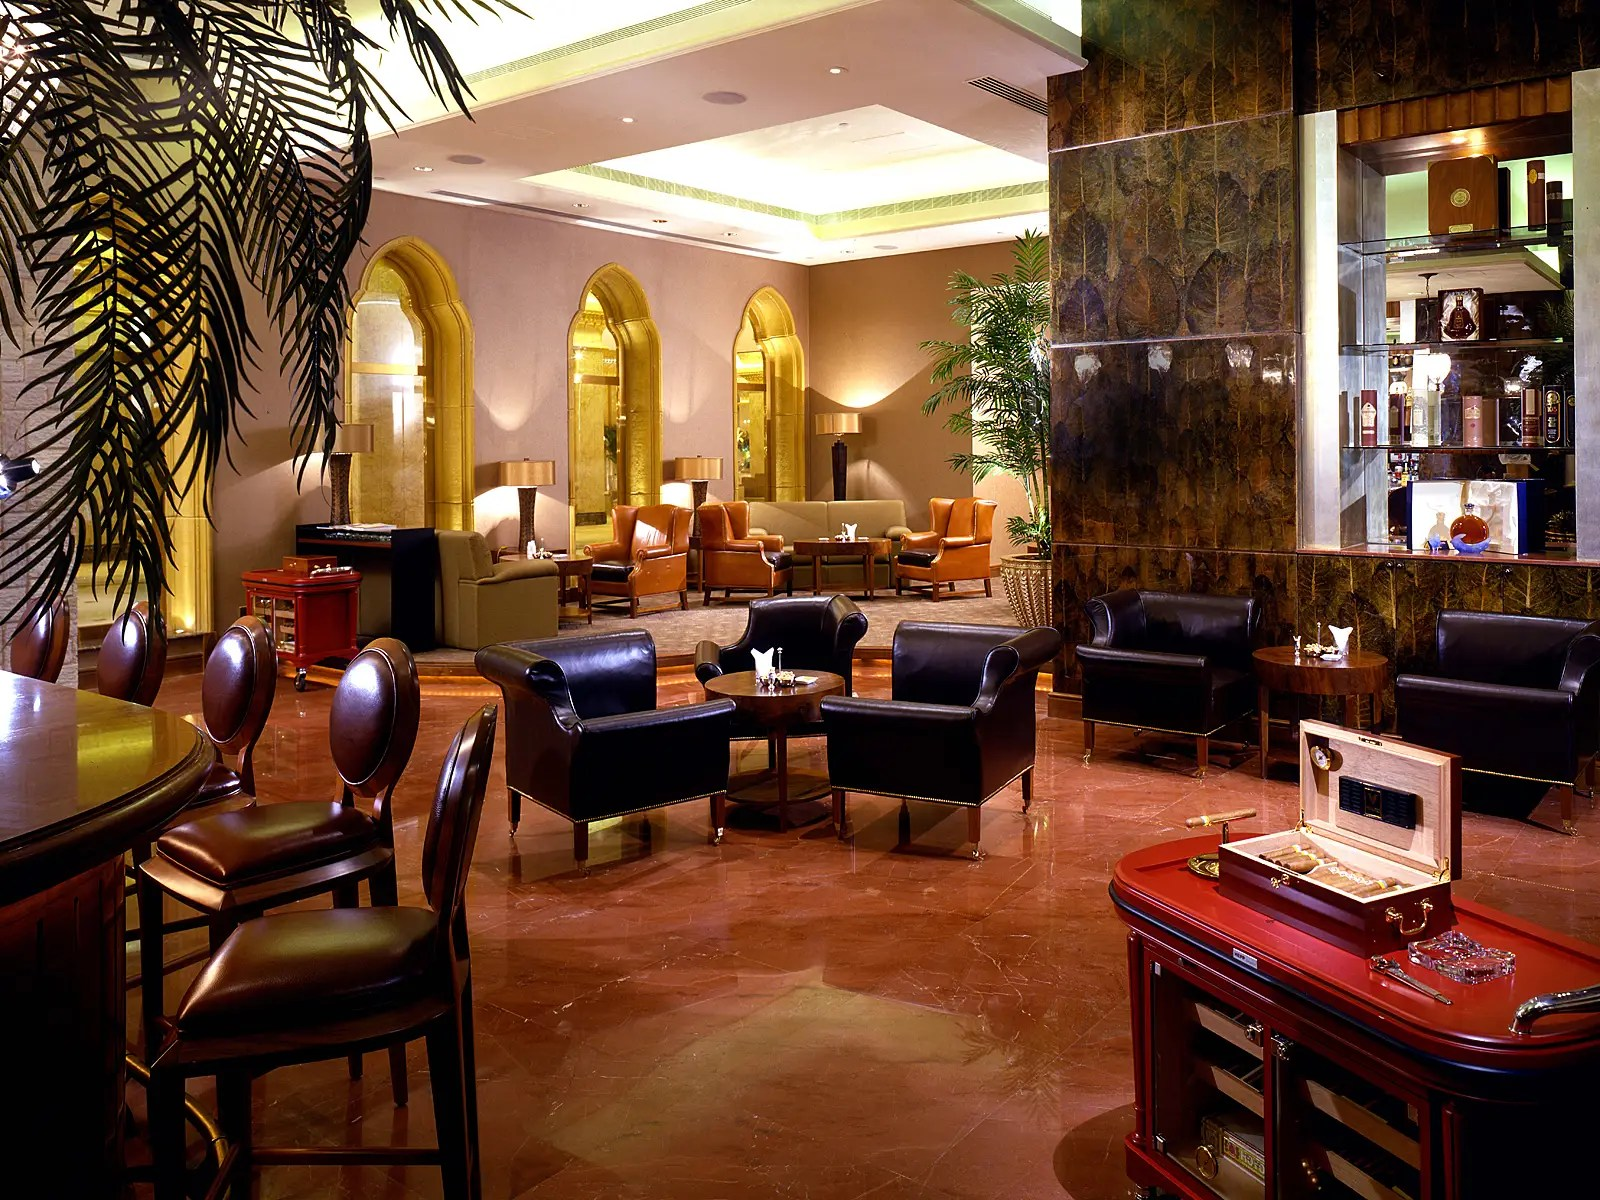 Or for the more old-school guest, the Havana Club boasts the finest cognacs, armagnacs, and cigars.